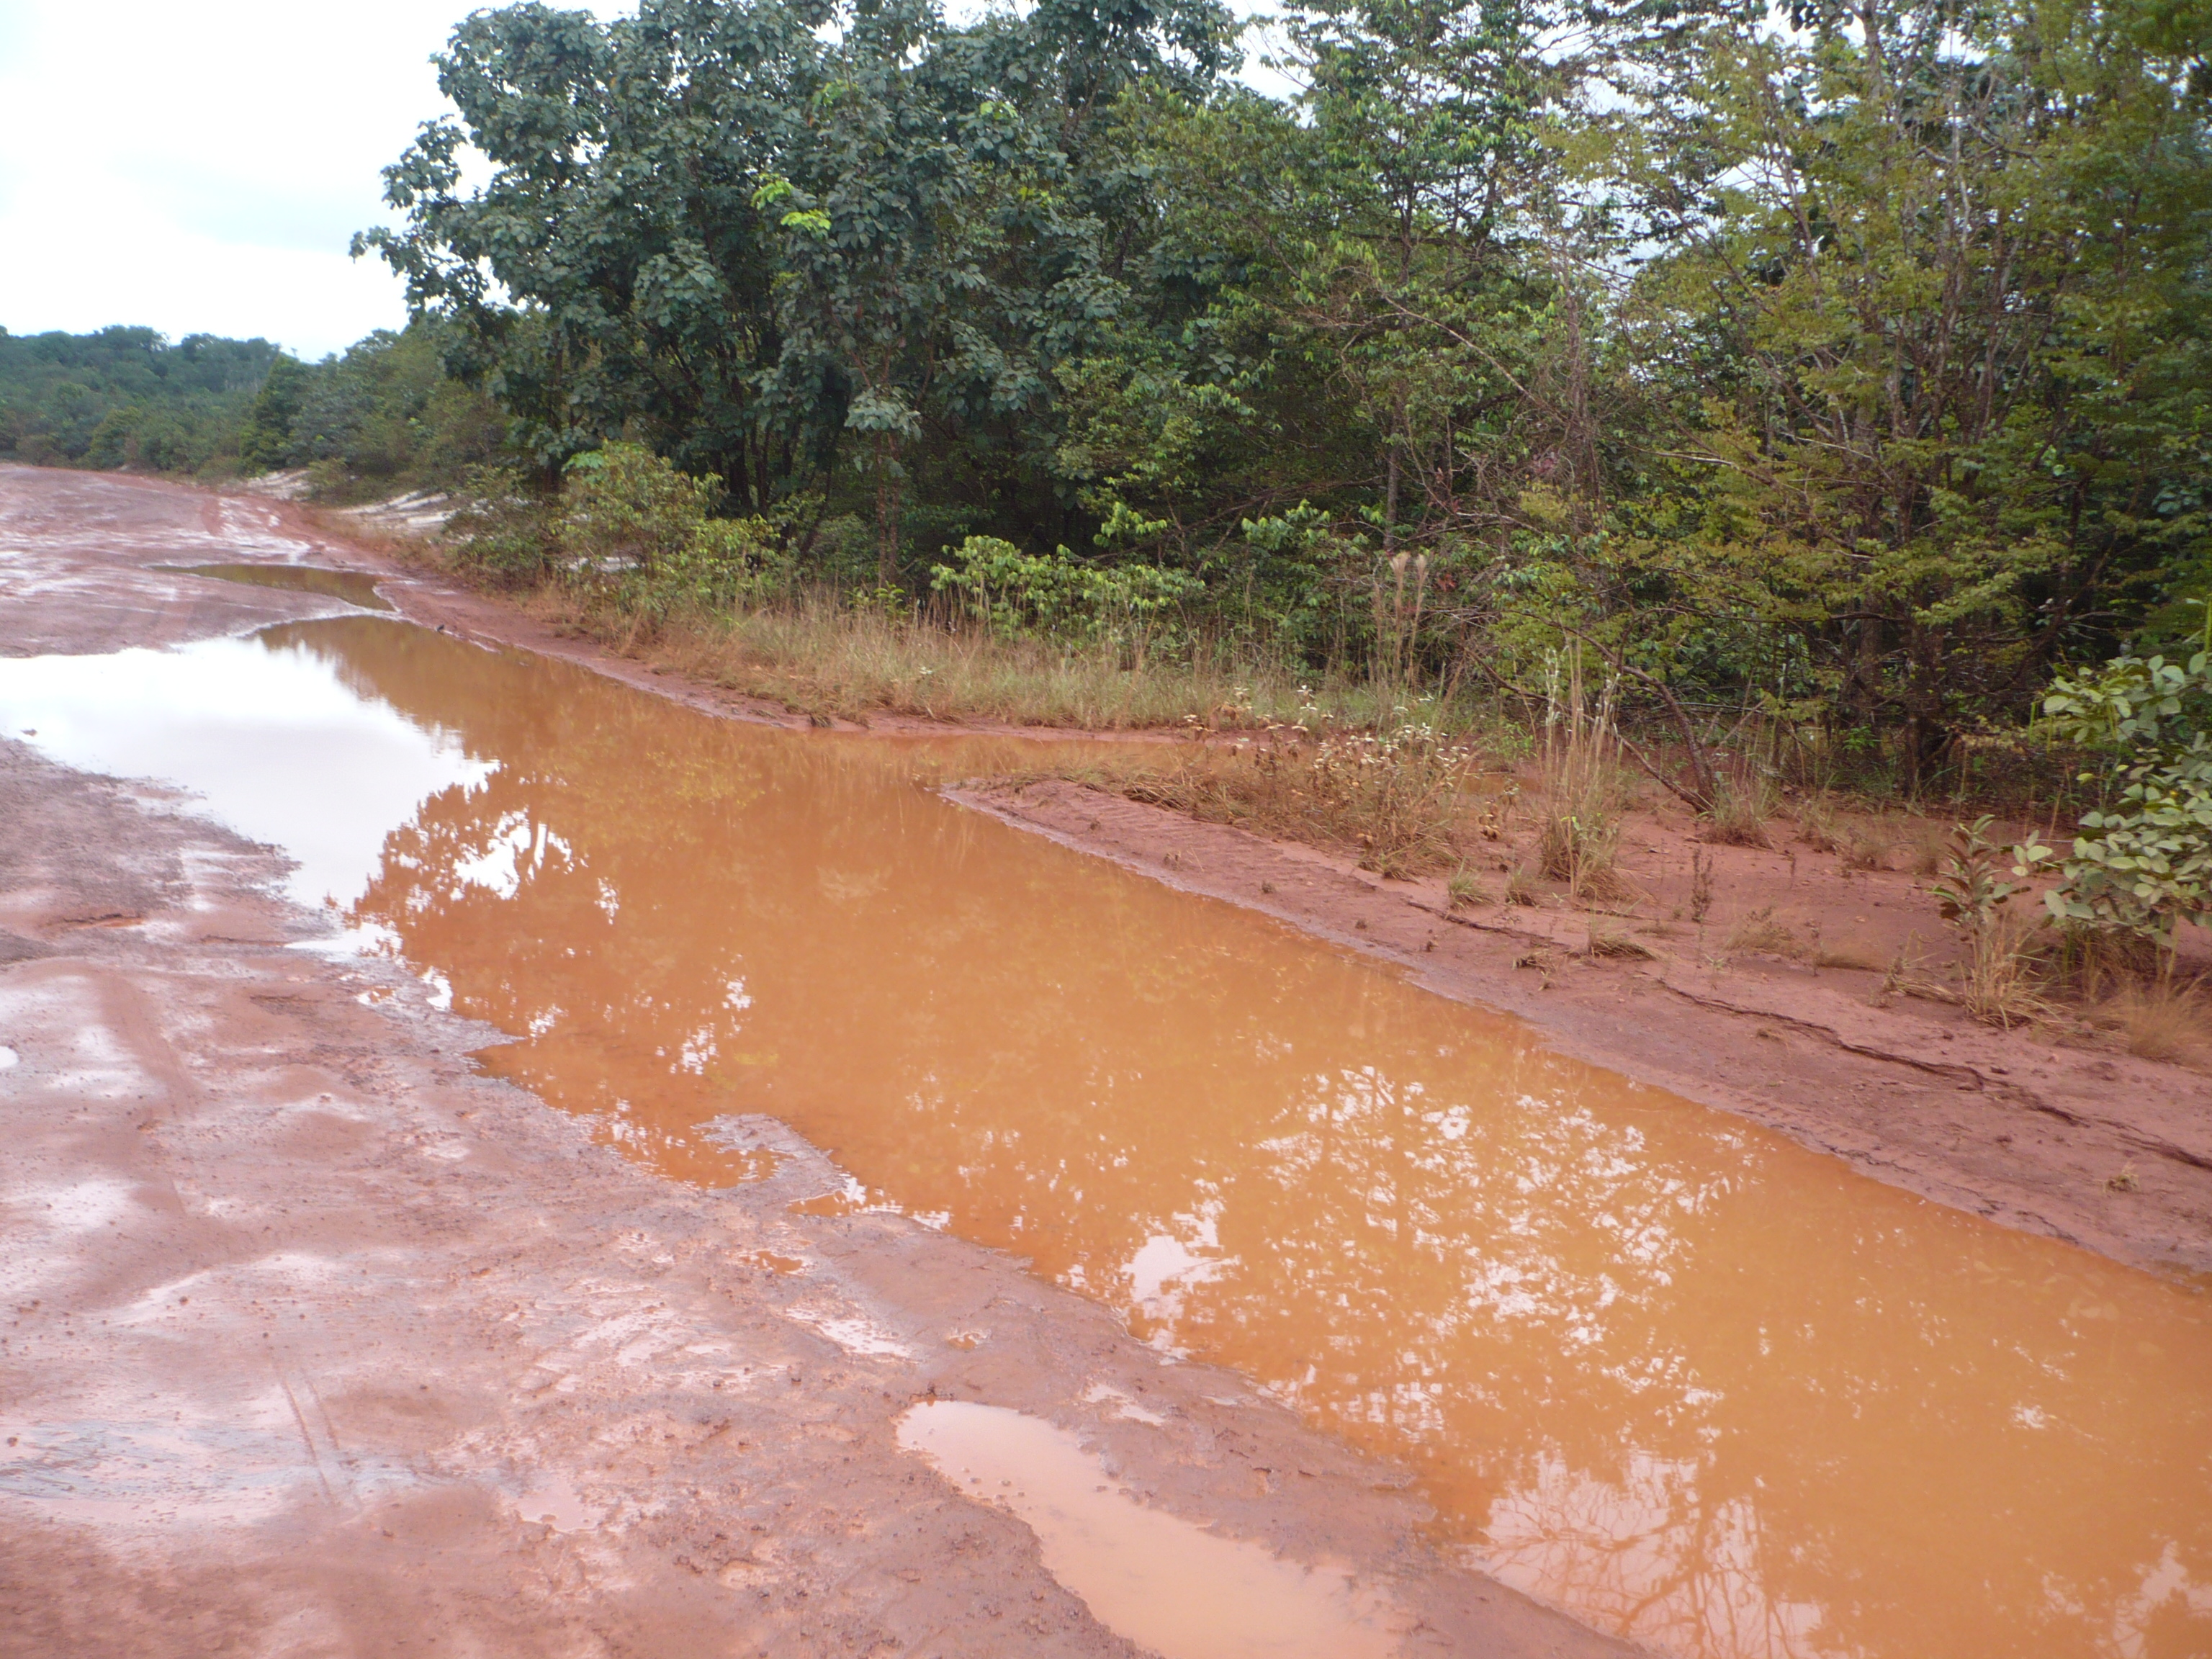 Caption: Weg in Guyana, Credit: Anton Foek